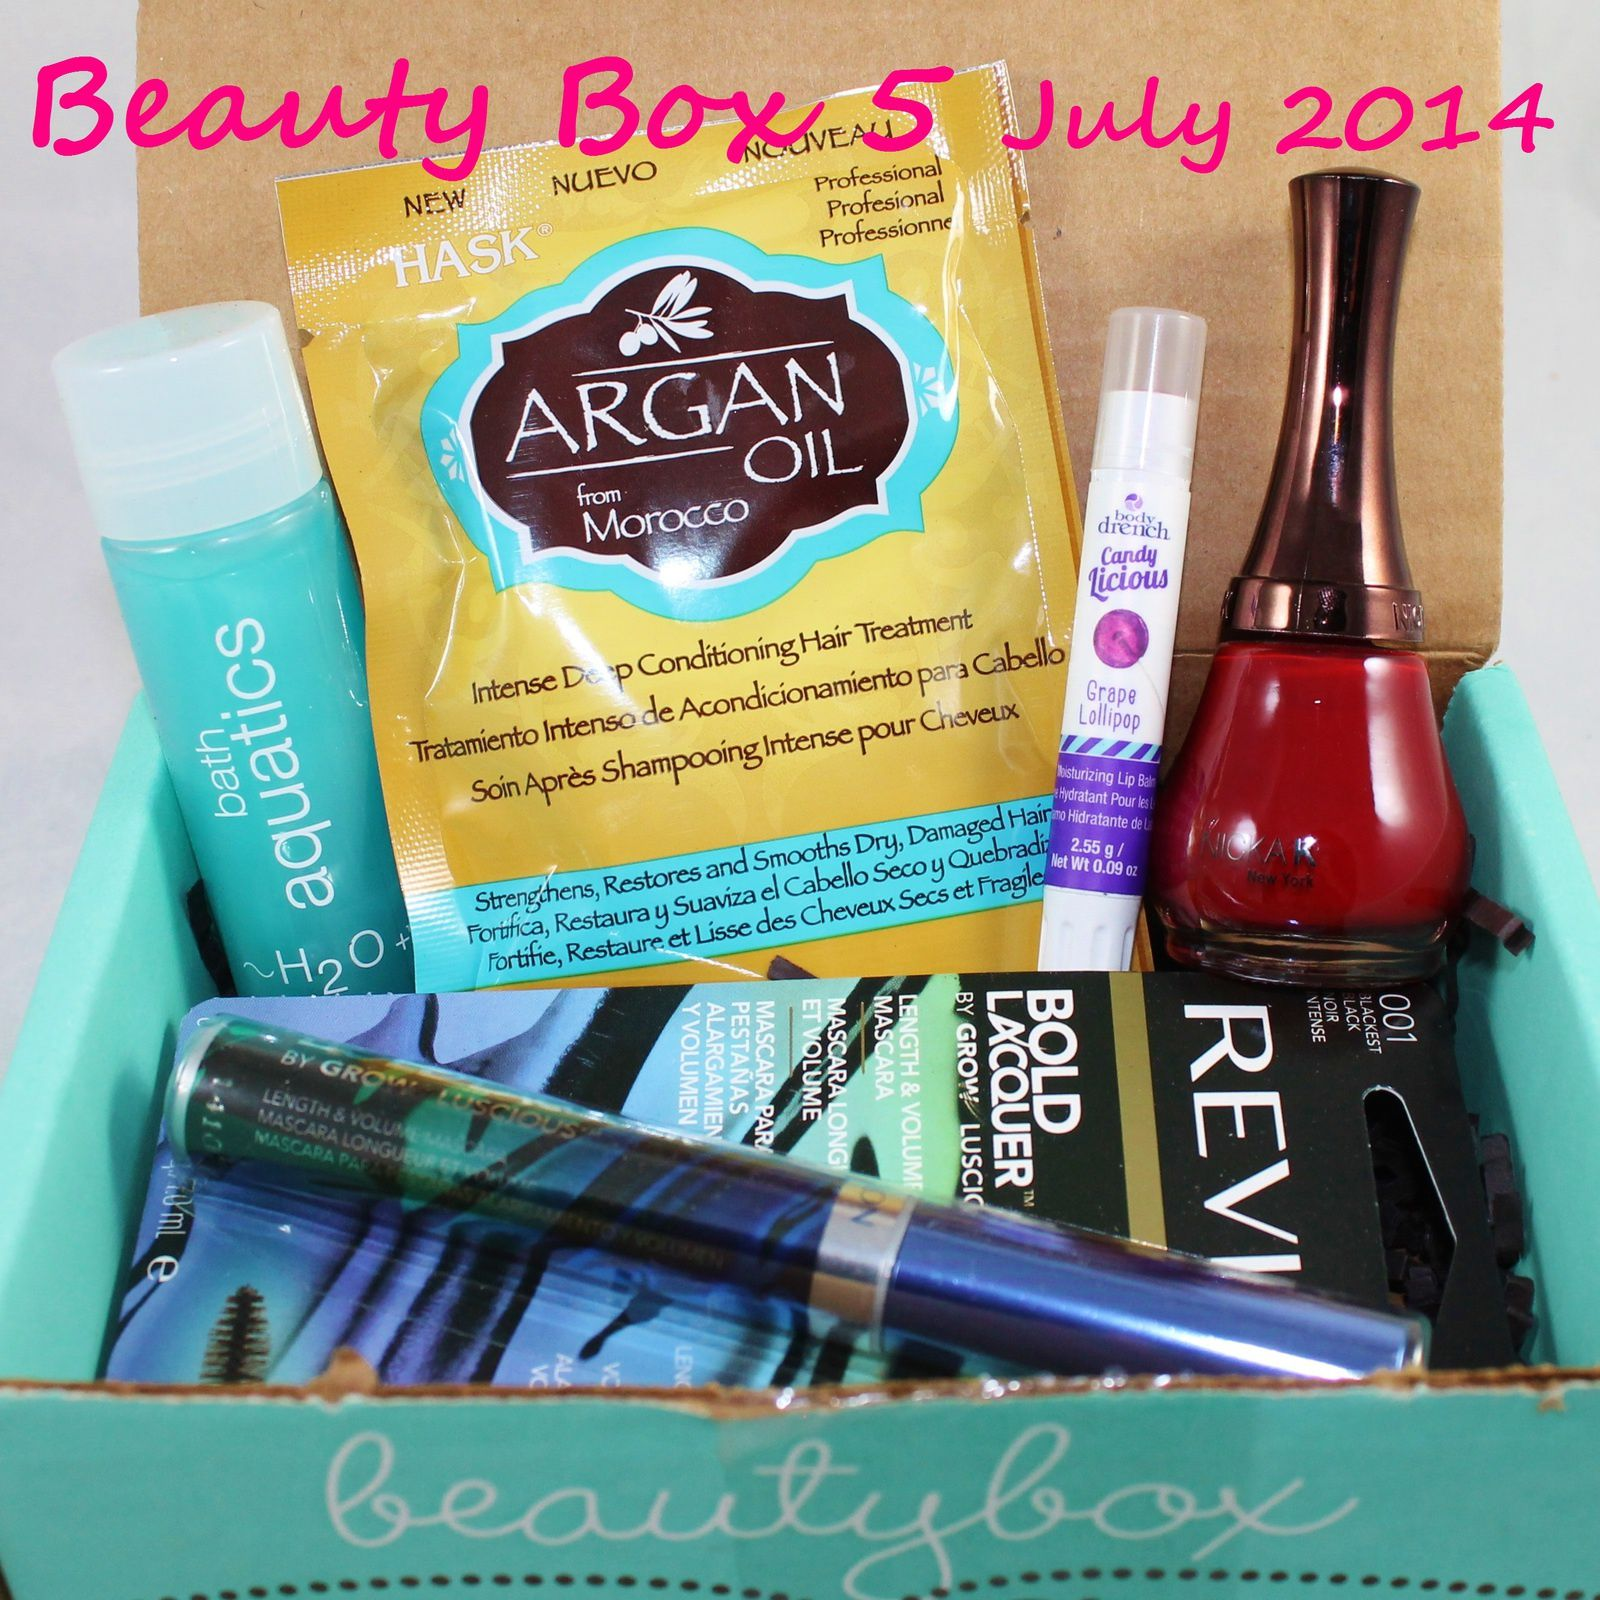 Beauty Box 5 July 2014